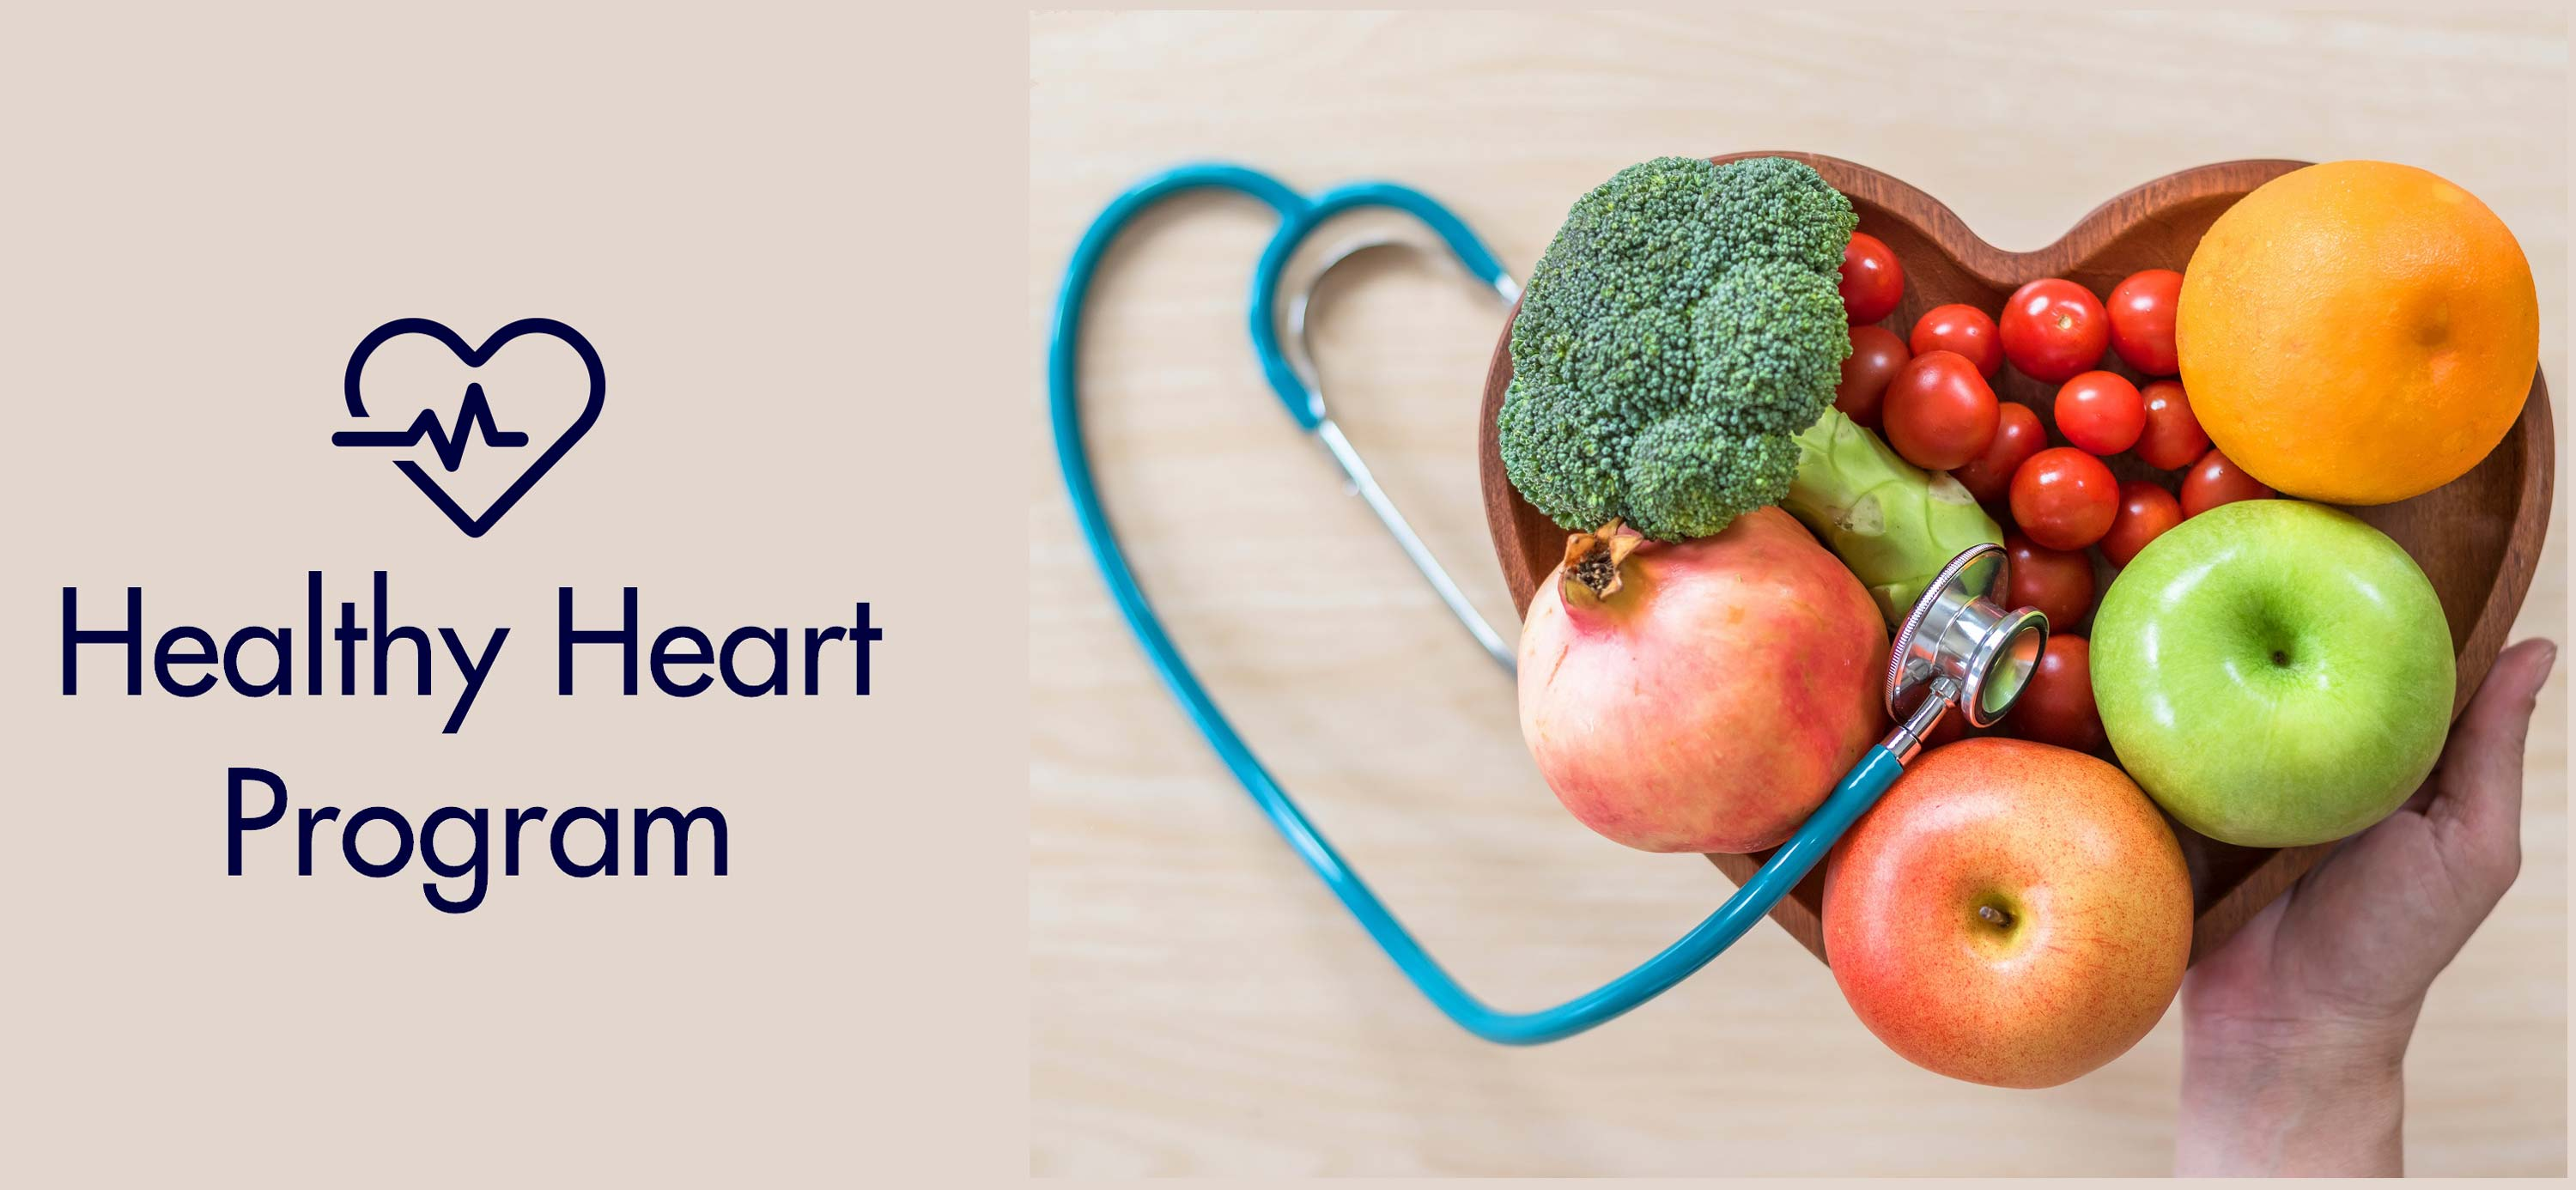 diet to reduce risk of heart disease